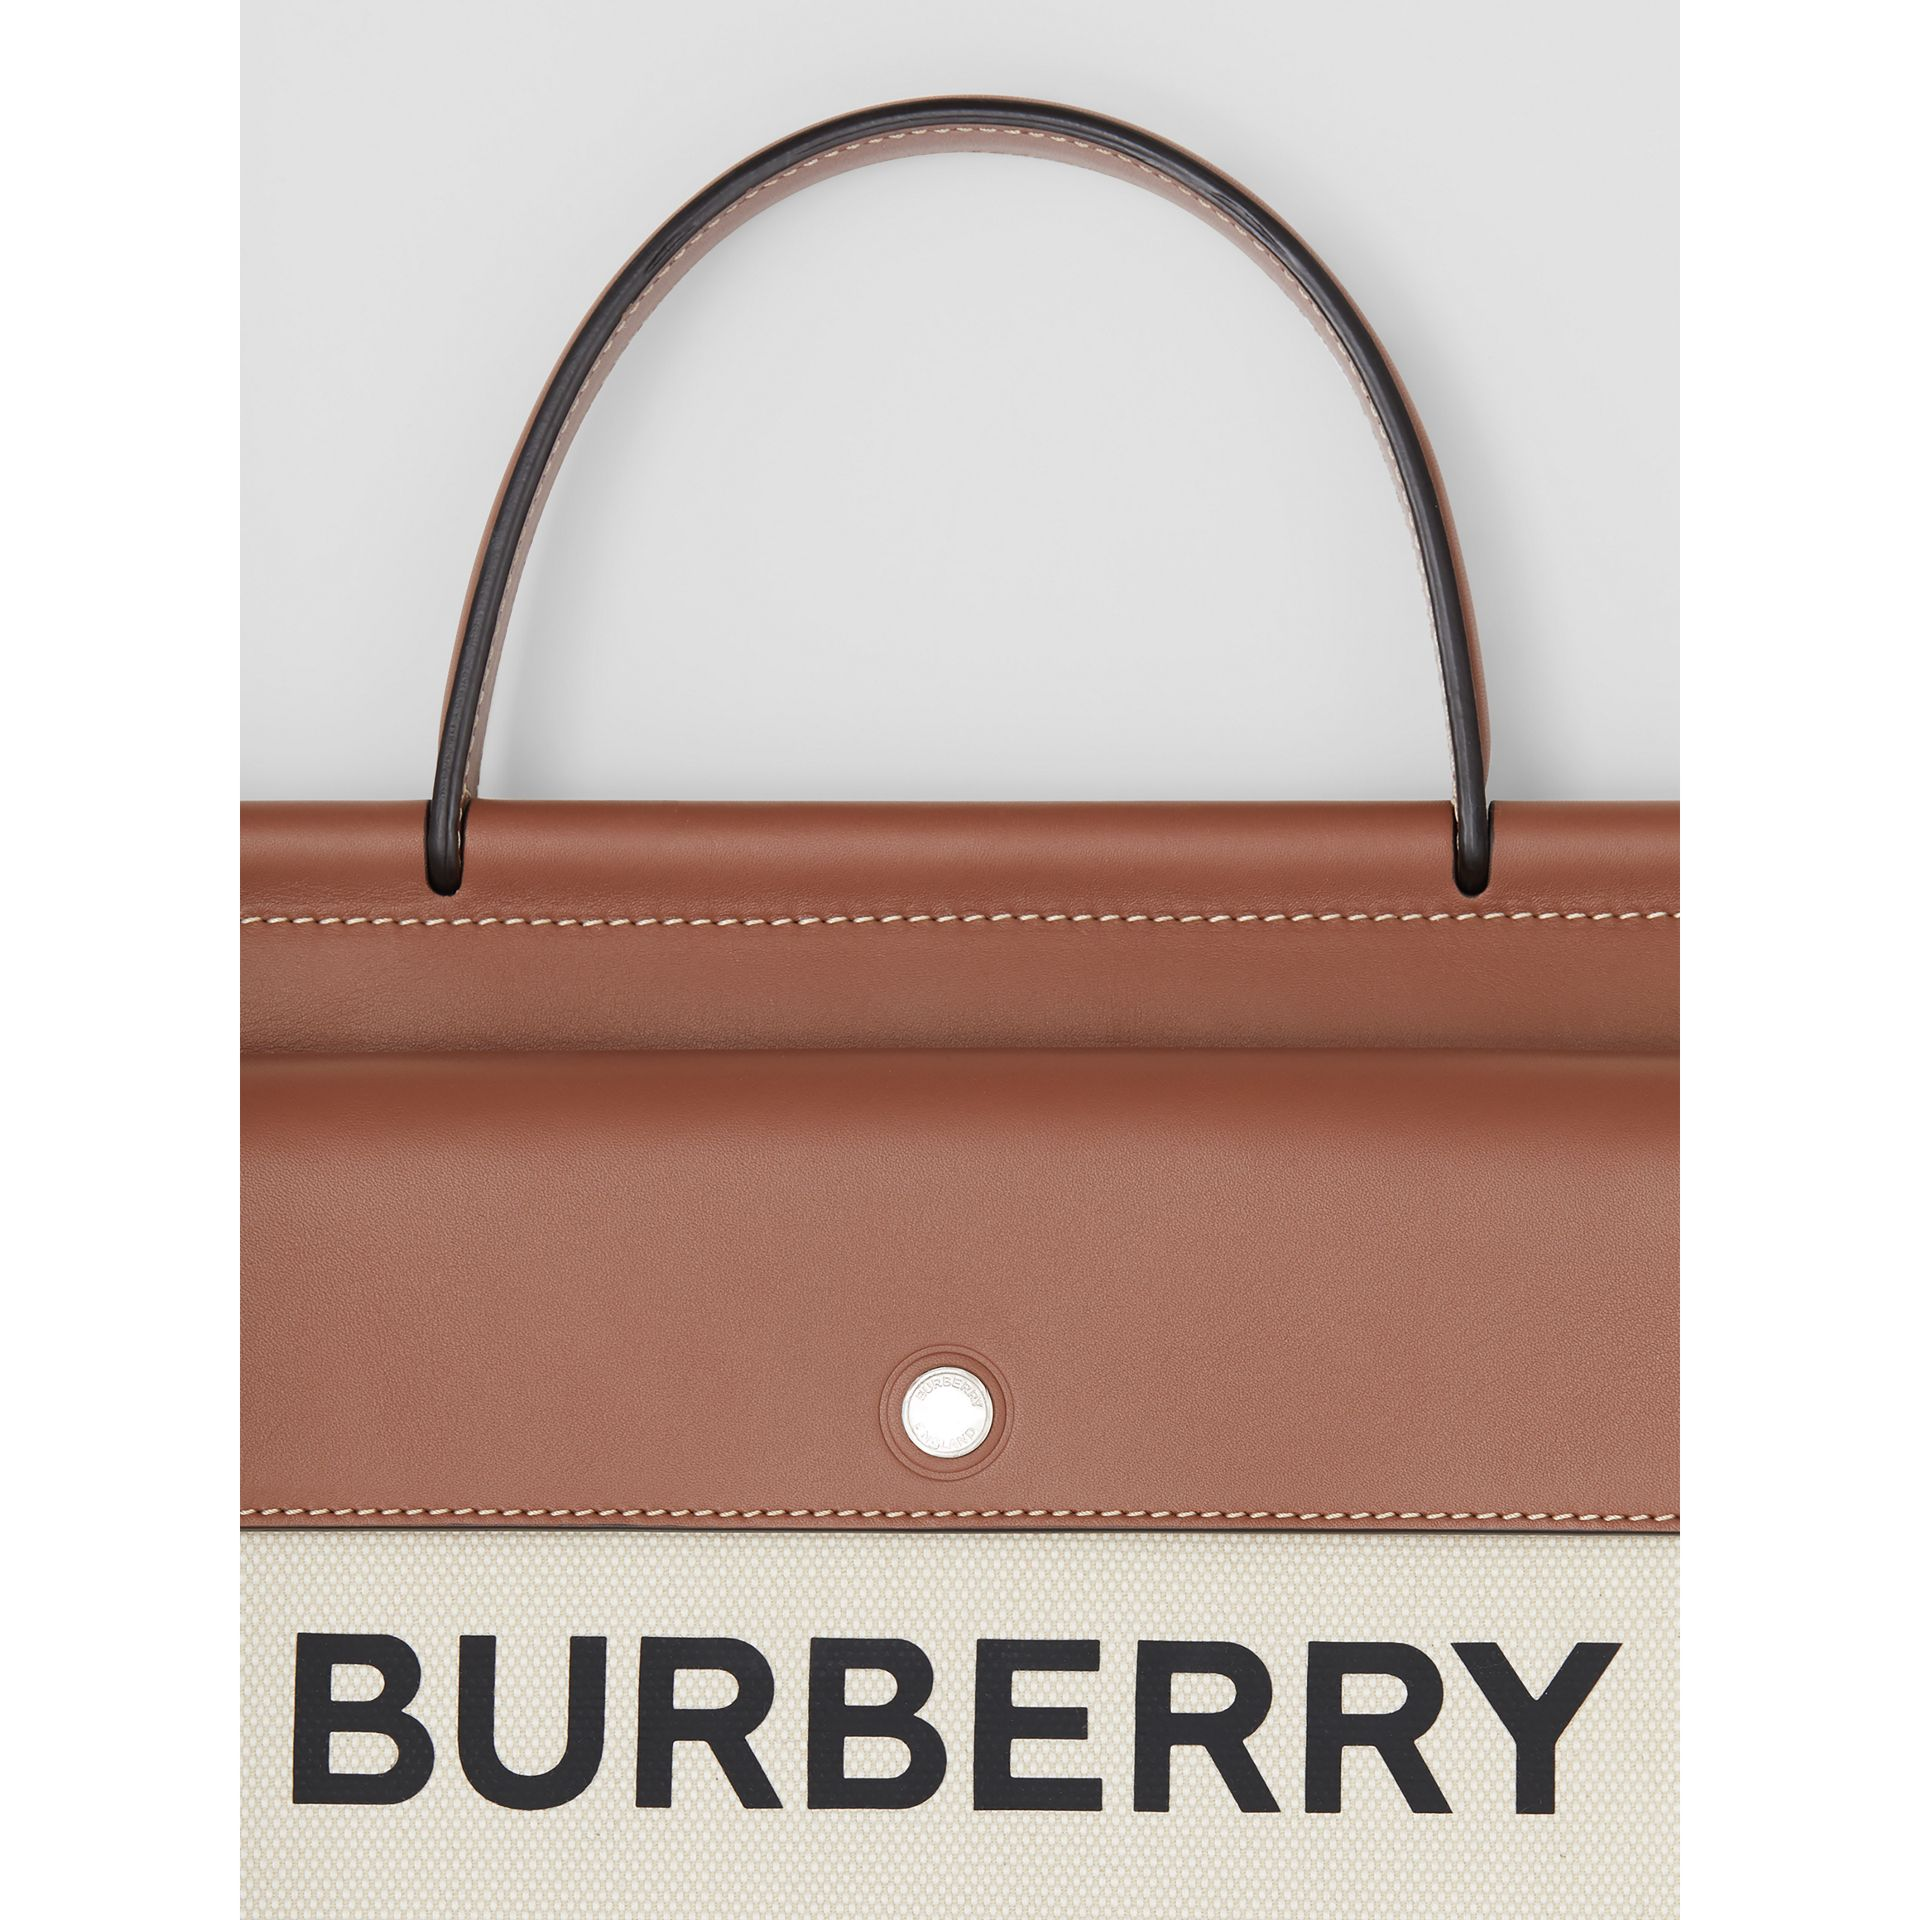 Small Horseferry Print Title Bag with Pocket Detail in Natural/malt Brown - Women | Burberry United Kingdom - gallery image 7